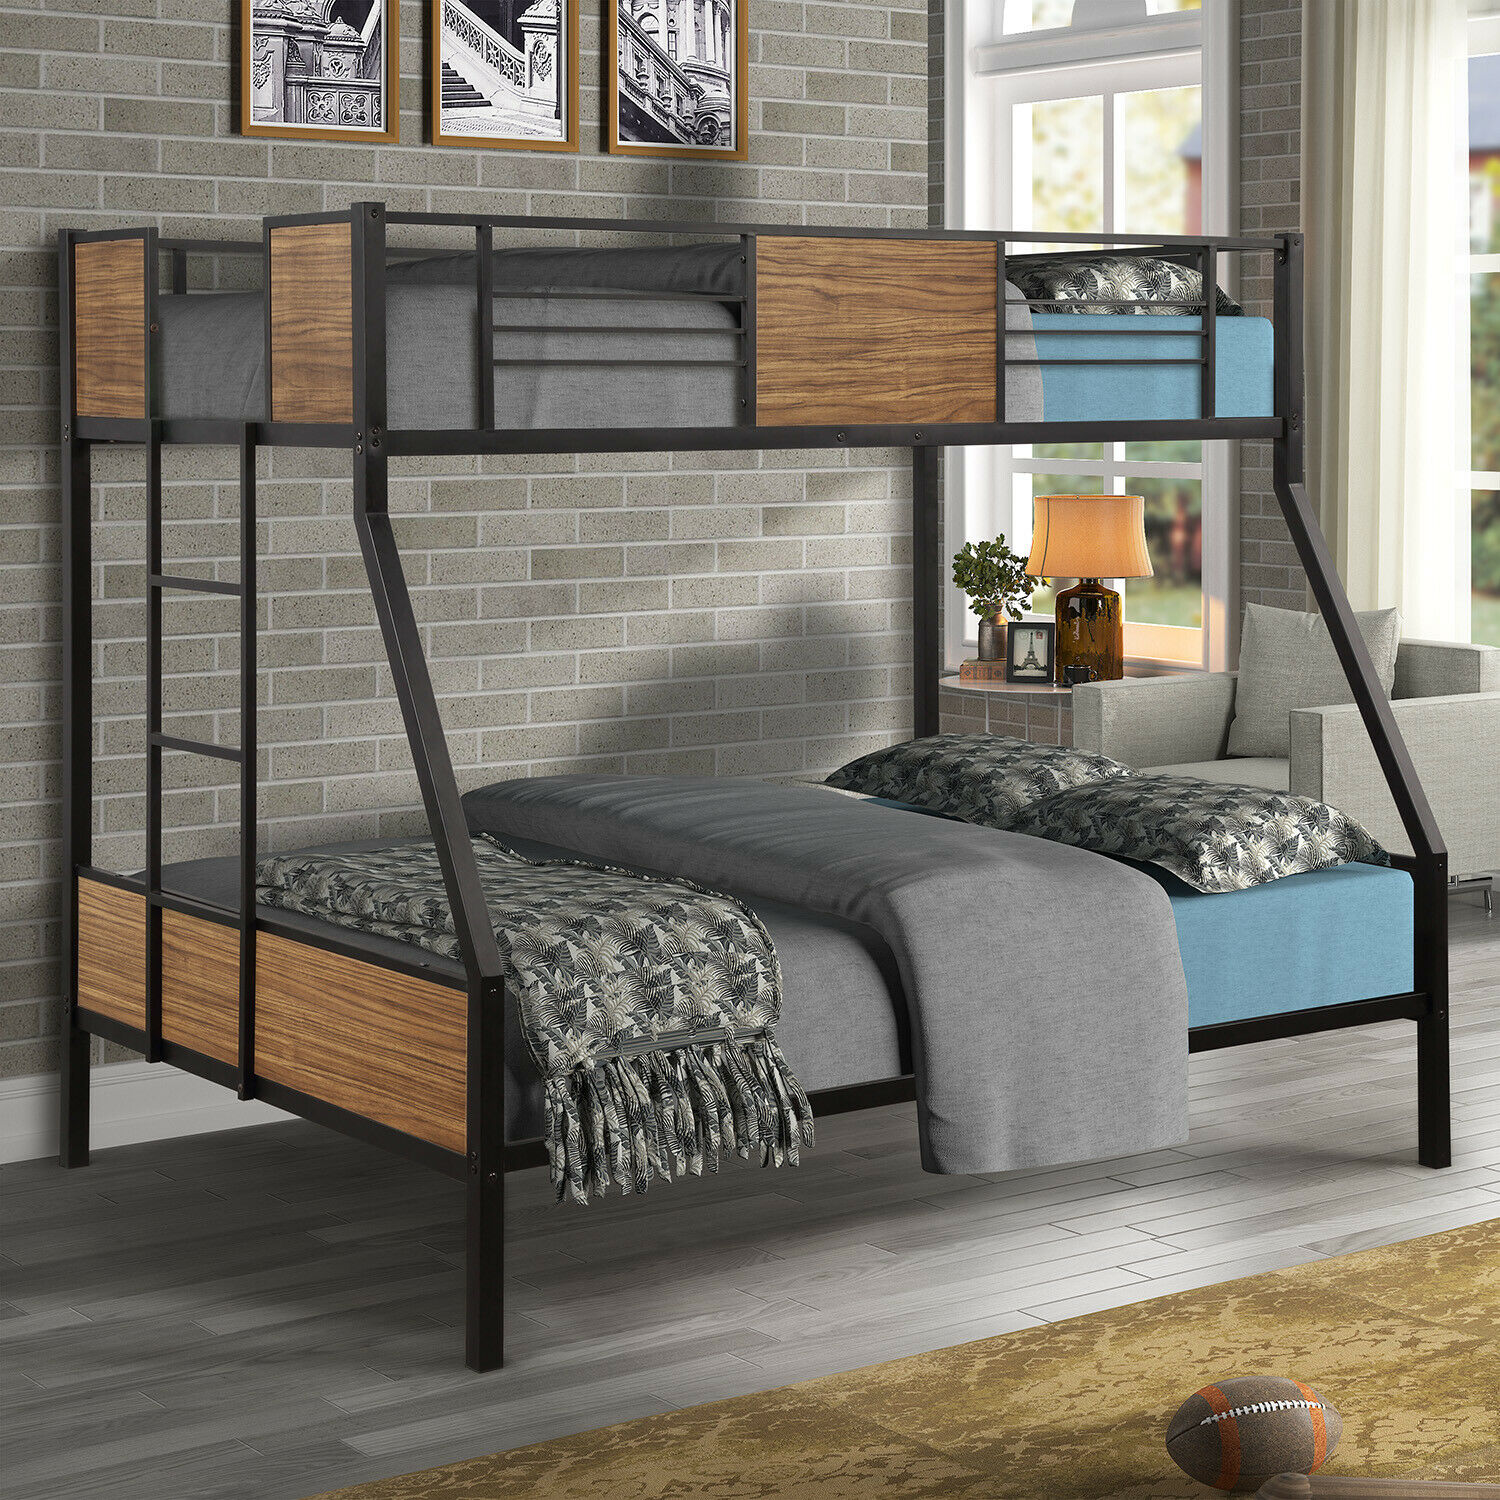 Twin Full Size Bunk Beds Steel Frame Tiendamia Com